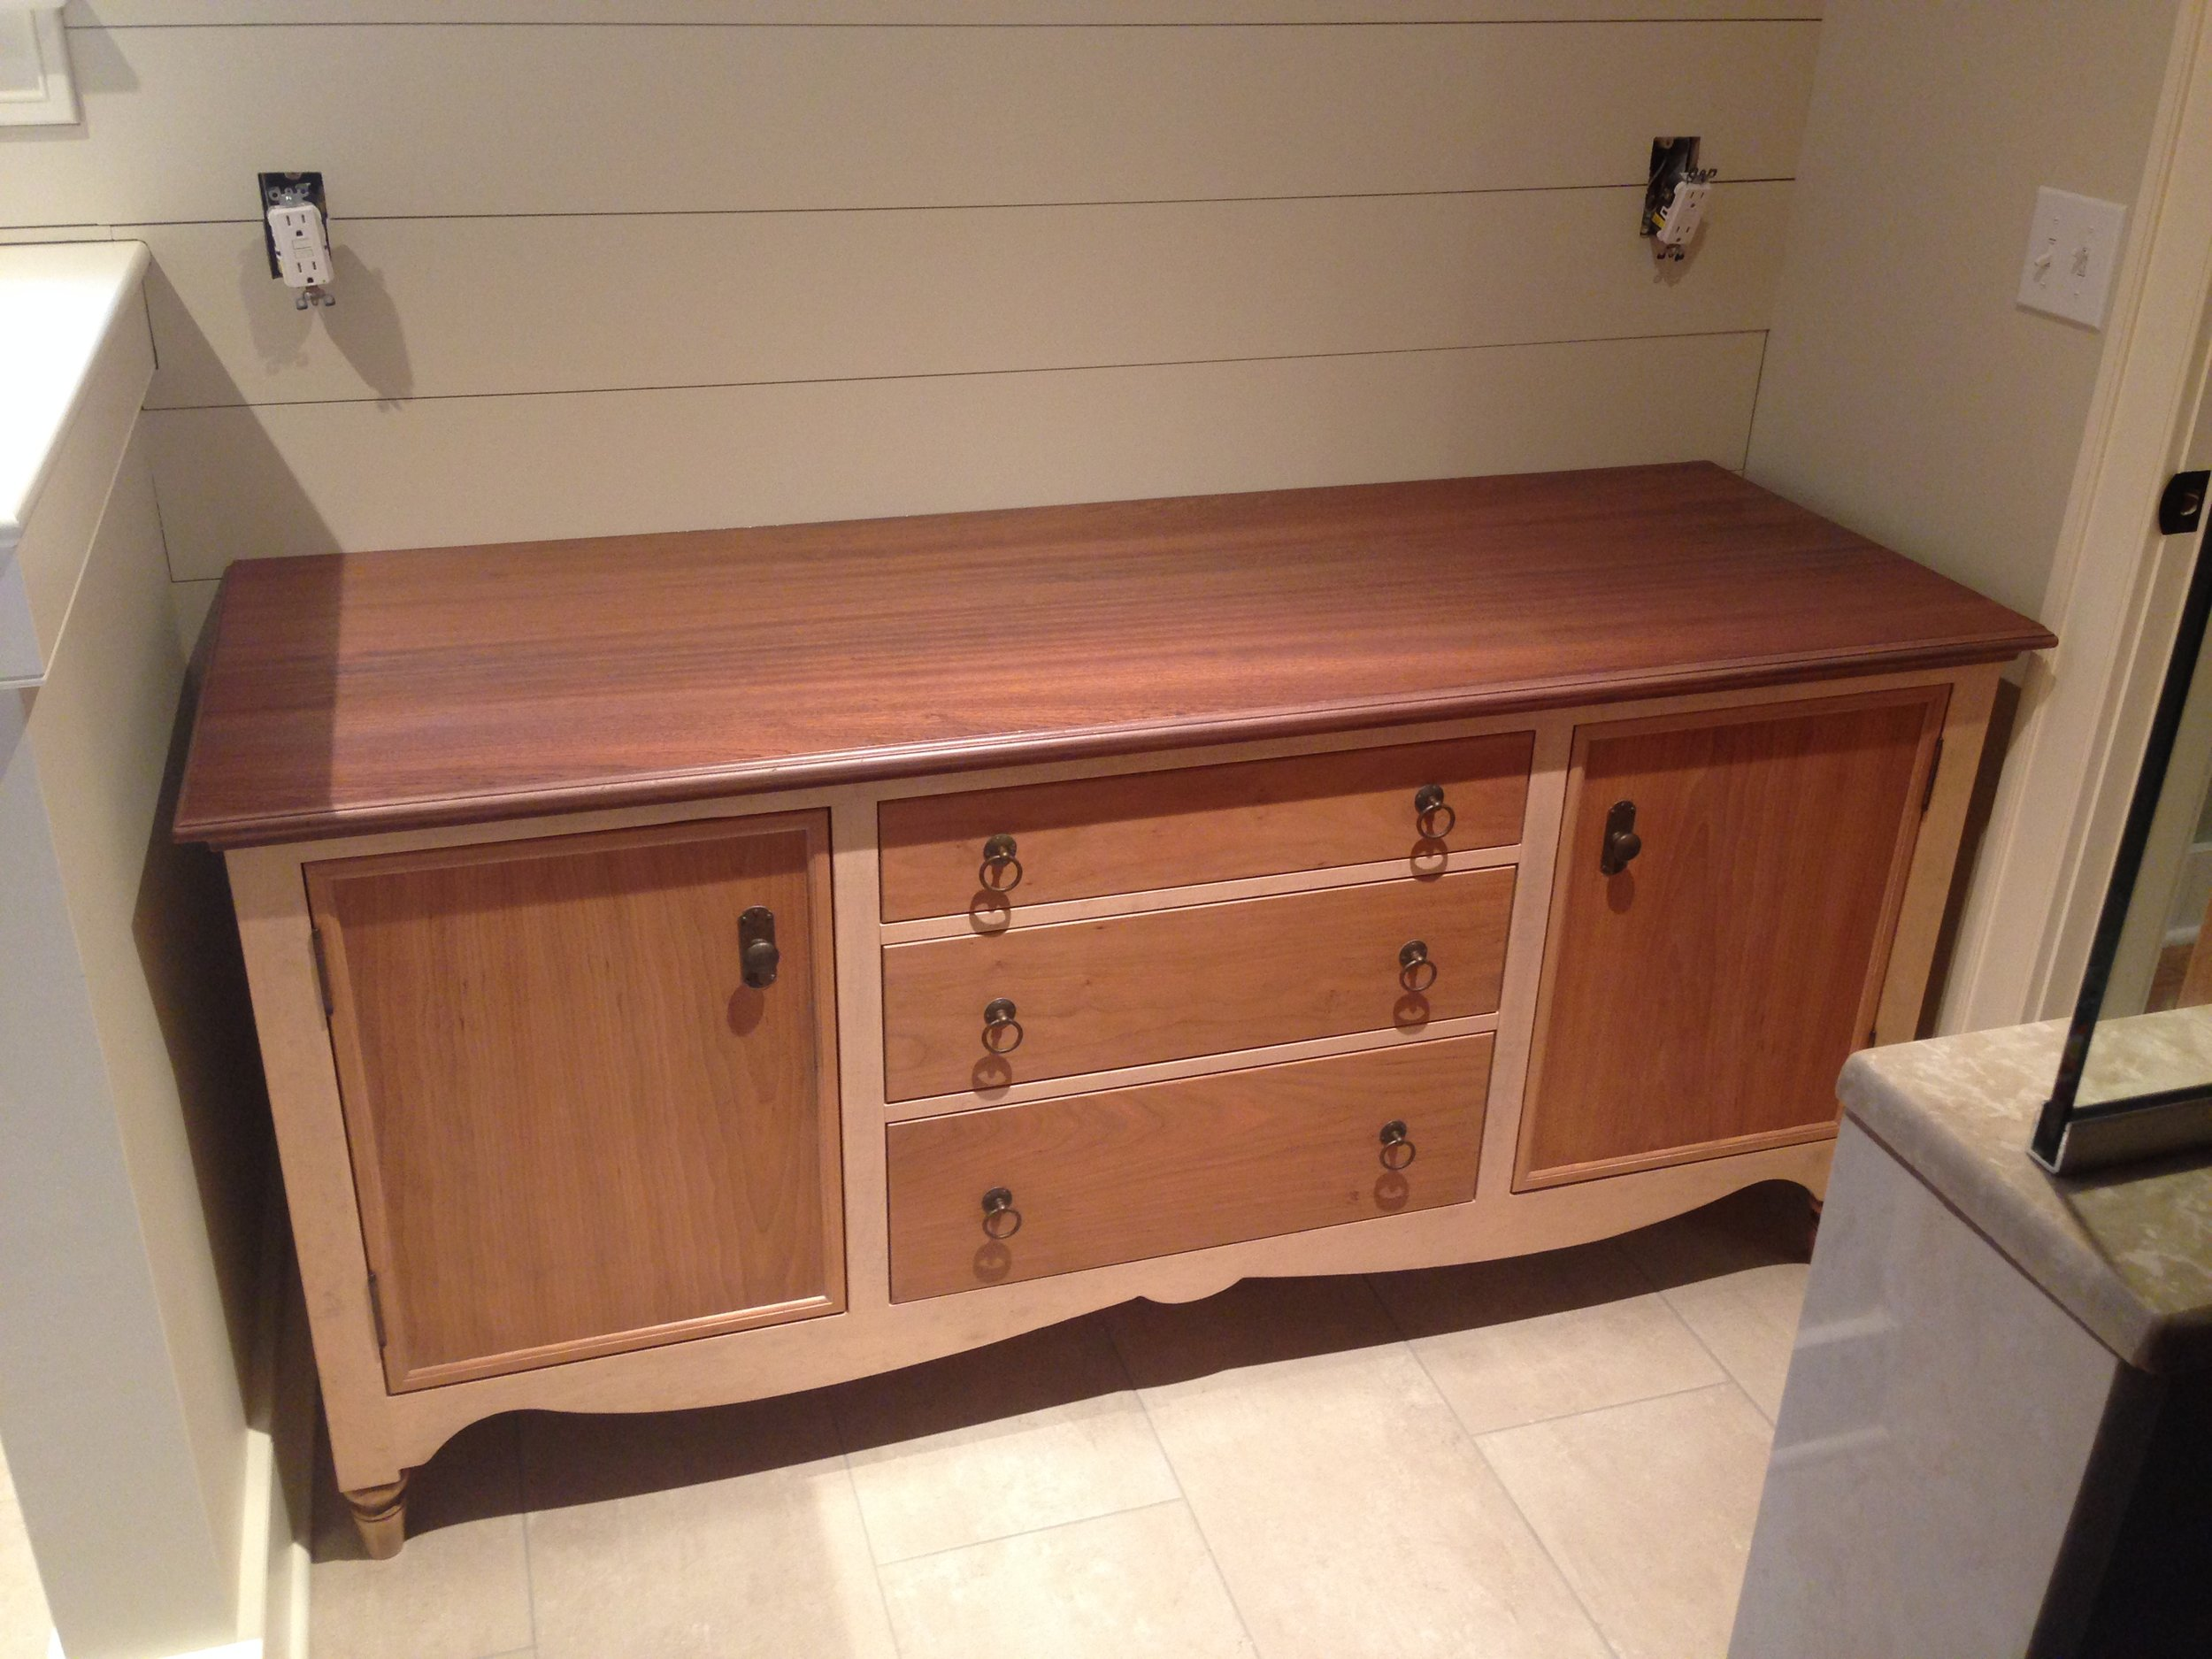 Master Bath Vanity of Maple and Cherry, with Mahogany Top, and Travertine Vessel Sinks 5.jpg